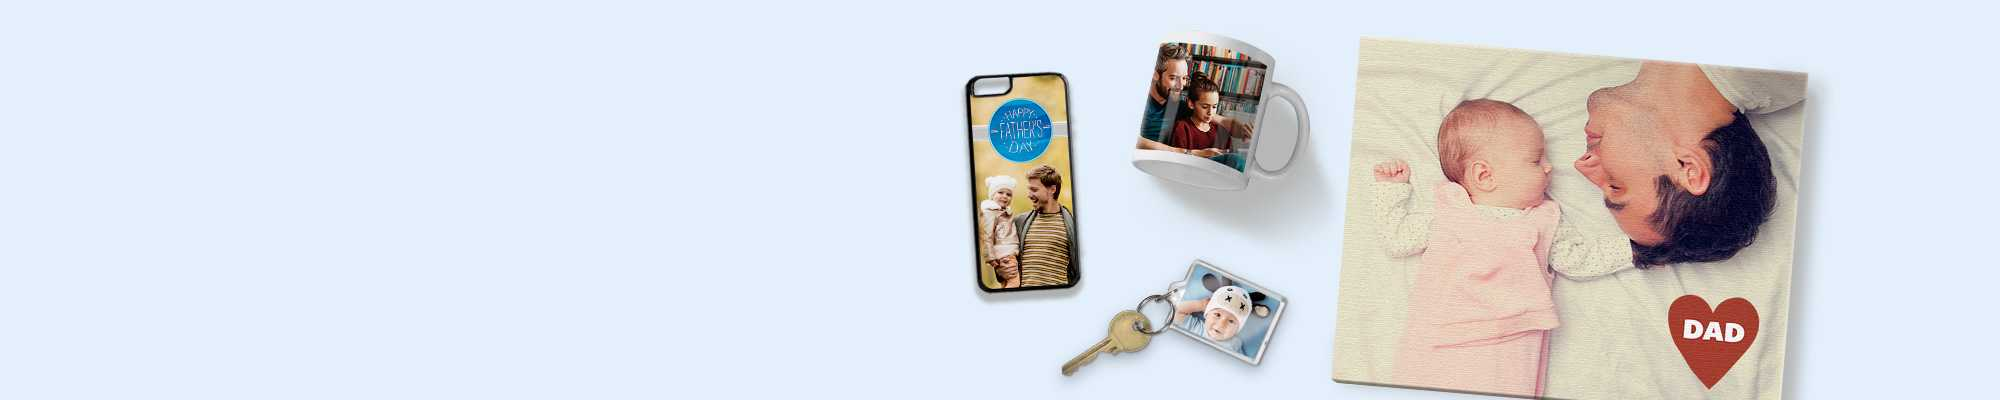 Father's Day Create memorable gifts for Father's by featuring his favourite photos!  Don't forget Father's Day is on Sunday 18th June 2017. Order selected Father's Day gifts up until 18th June using our same day collect service!